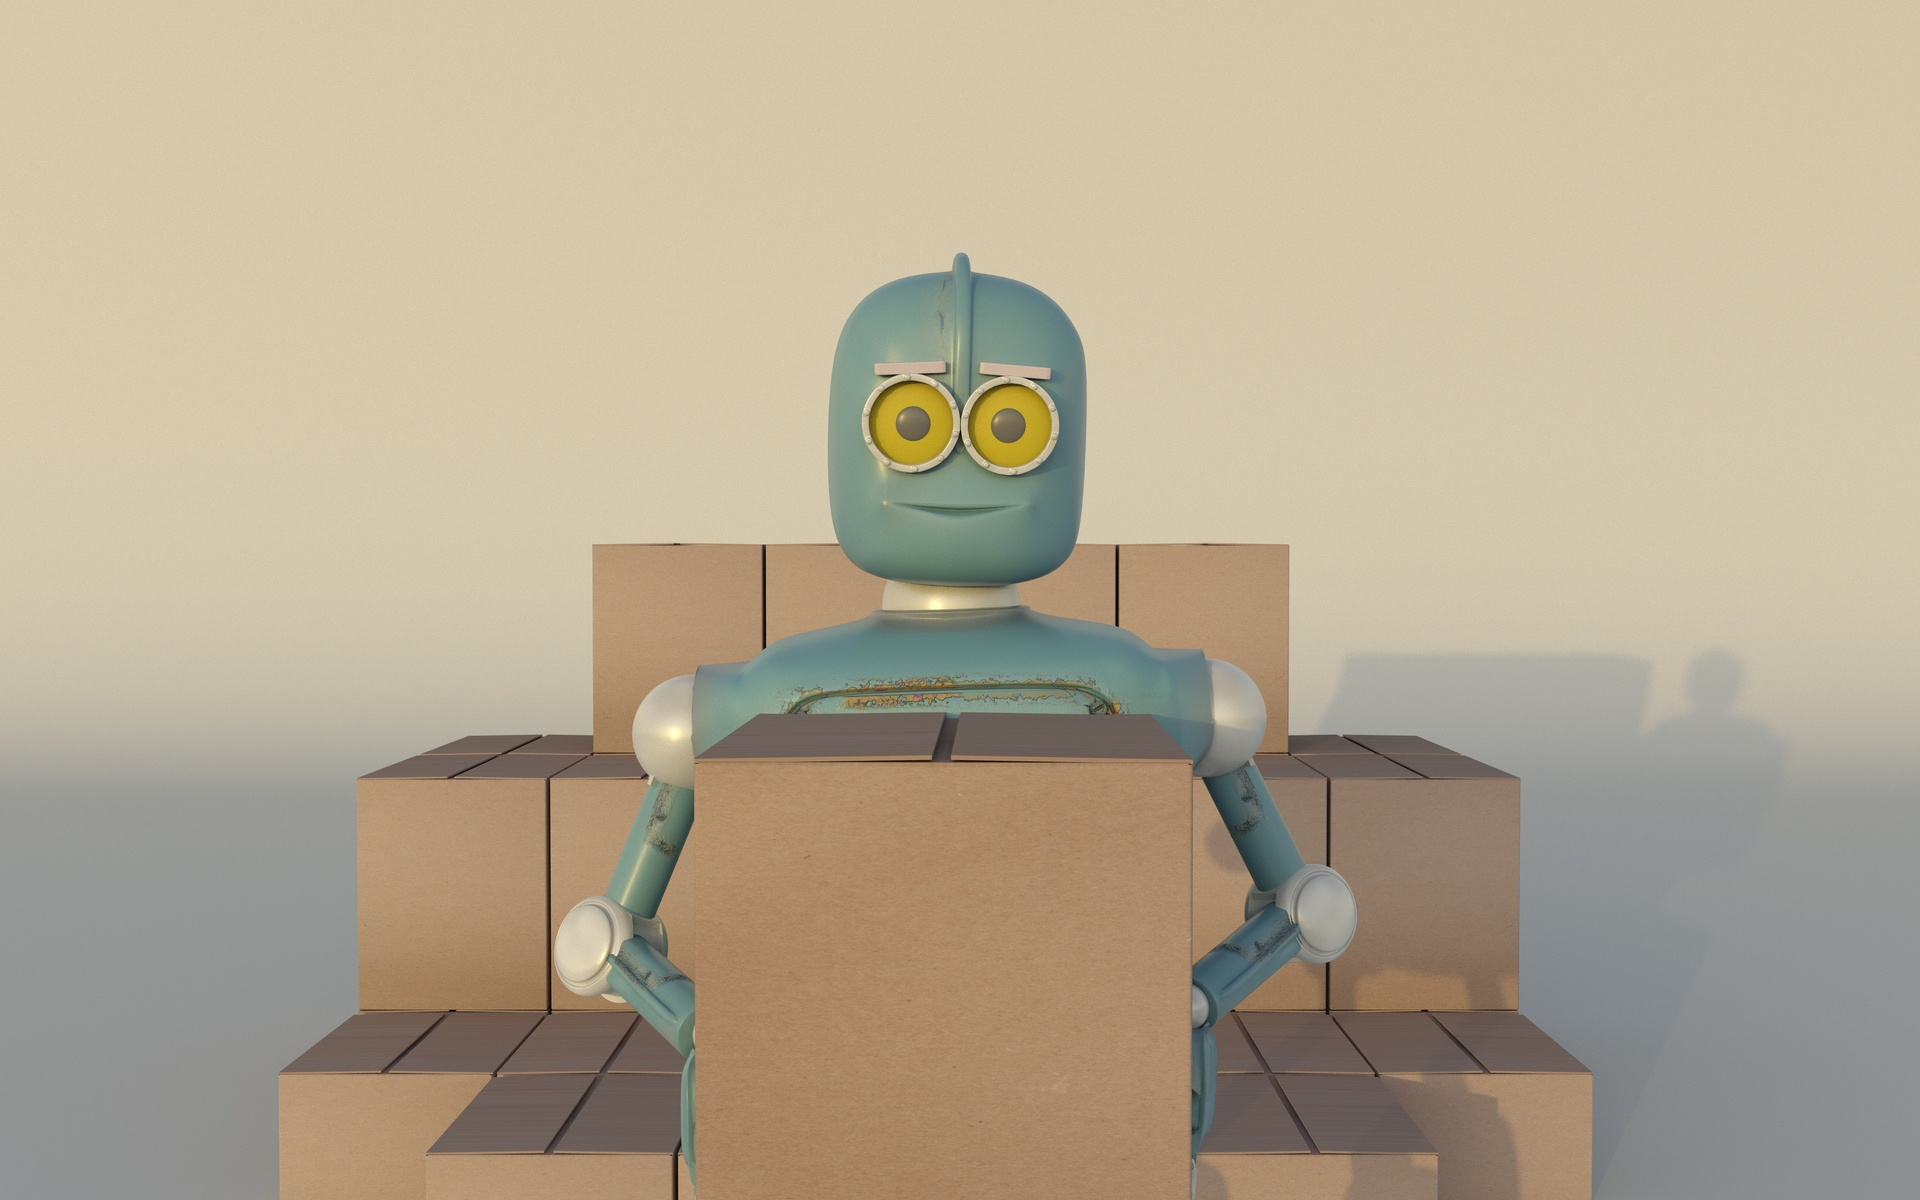 Six ways robots have infiltrated your life